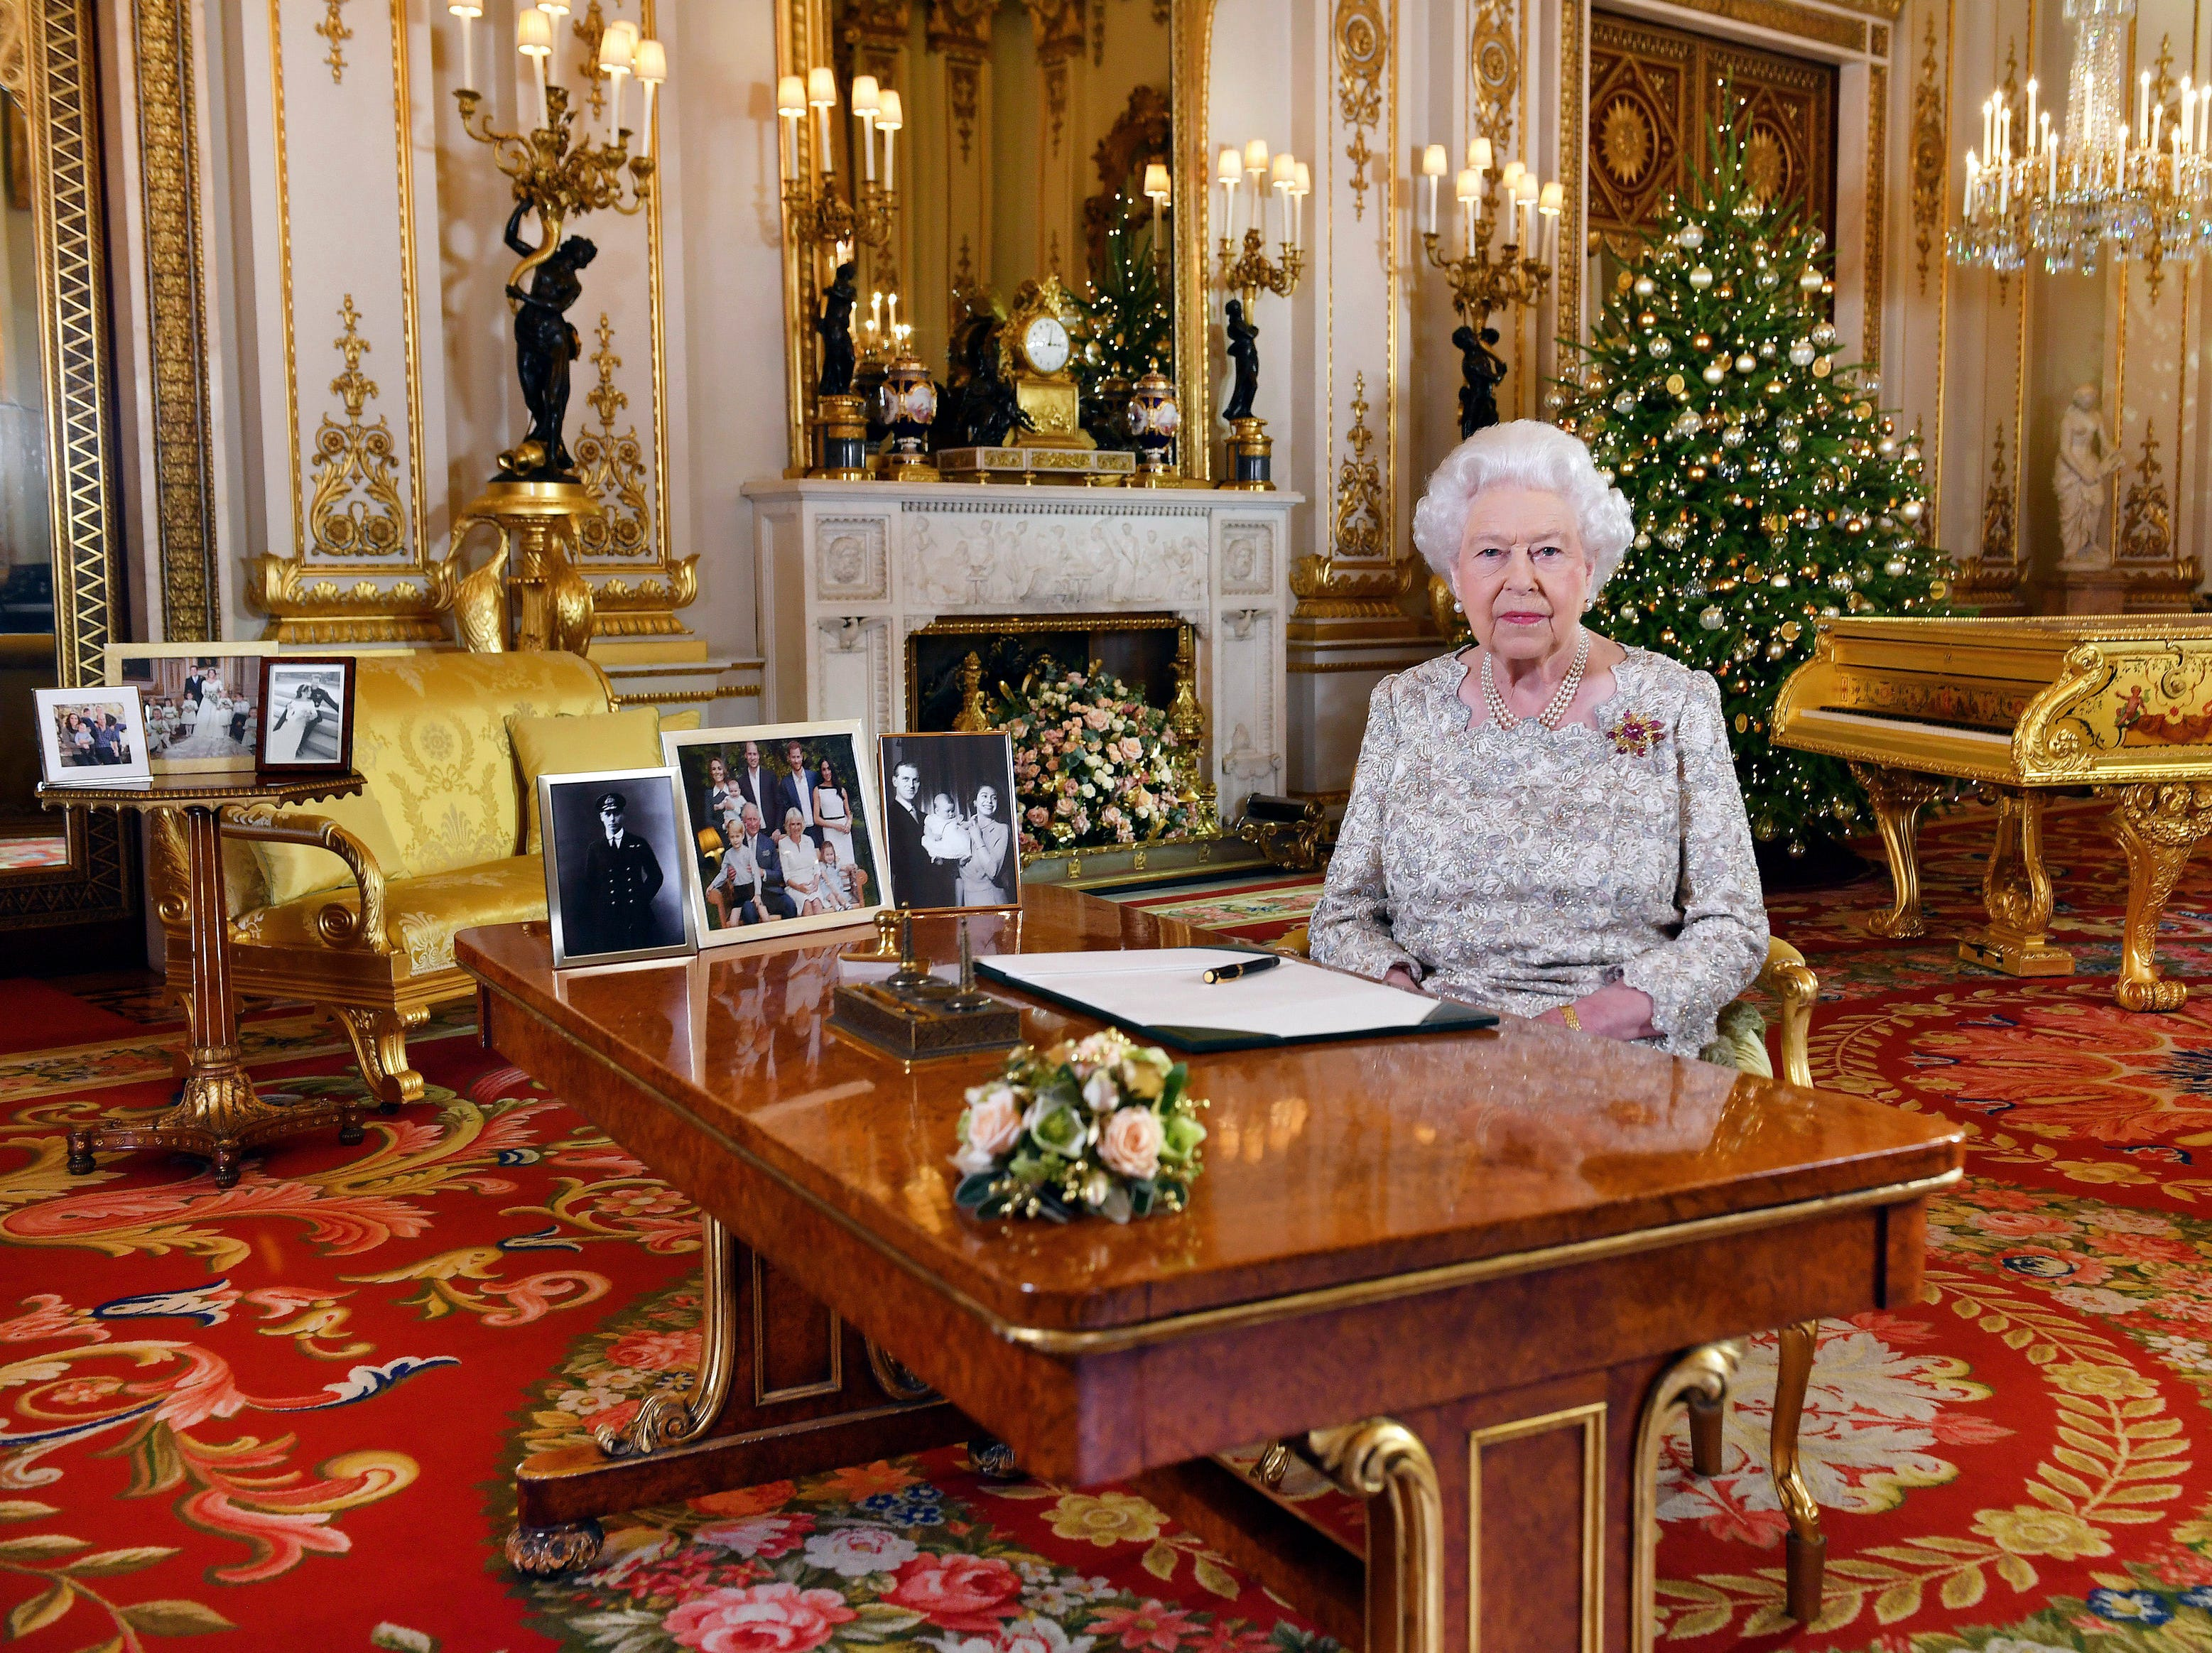 In this image released on Tuesday, Dec. 25, 2018, Britain's Queen Elizabeth poses for a photograph after she recorded her annual Christmas Day message, in the White Drawing Room of Buckingham Palace, London. (John Stillwell/Pool via AP) ORG XMIT: LLT504